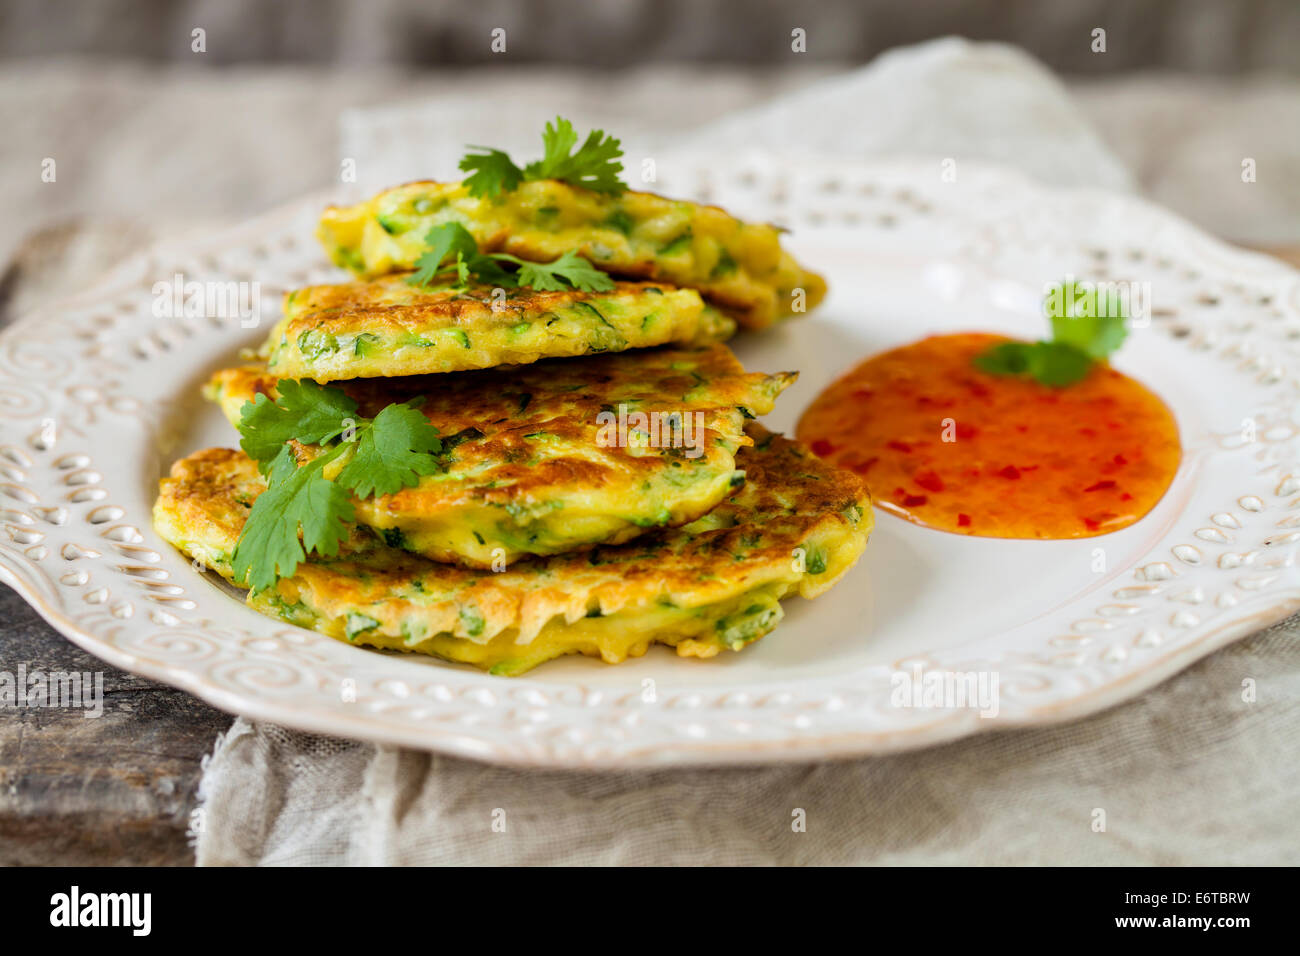 Courgette pancakes with chili sauce - Stock Image